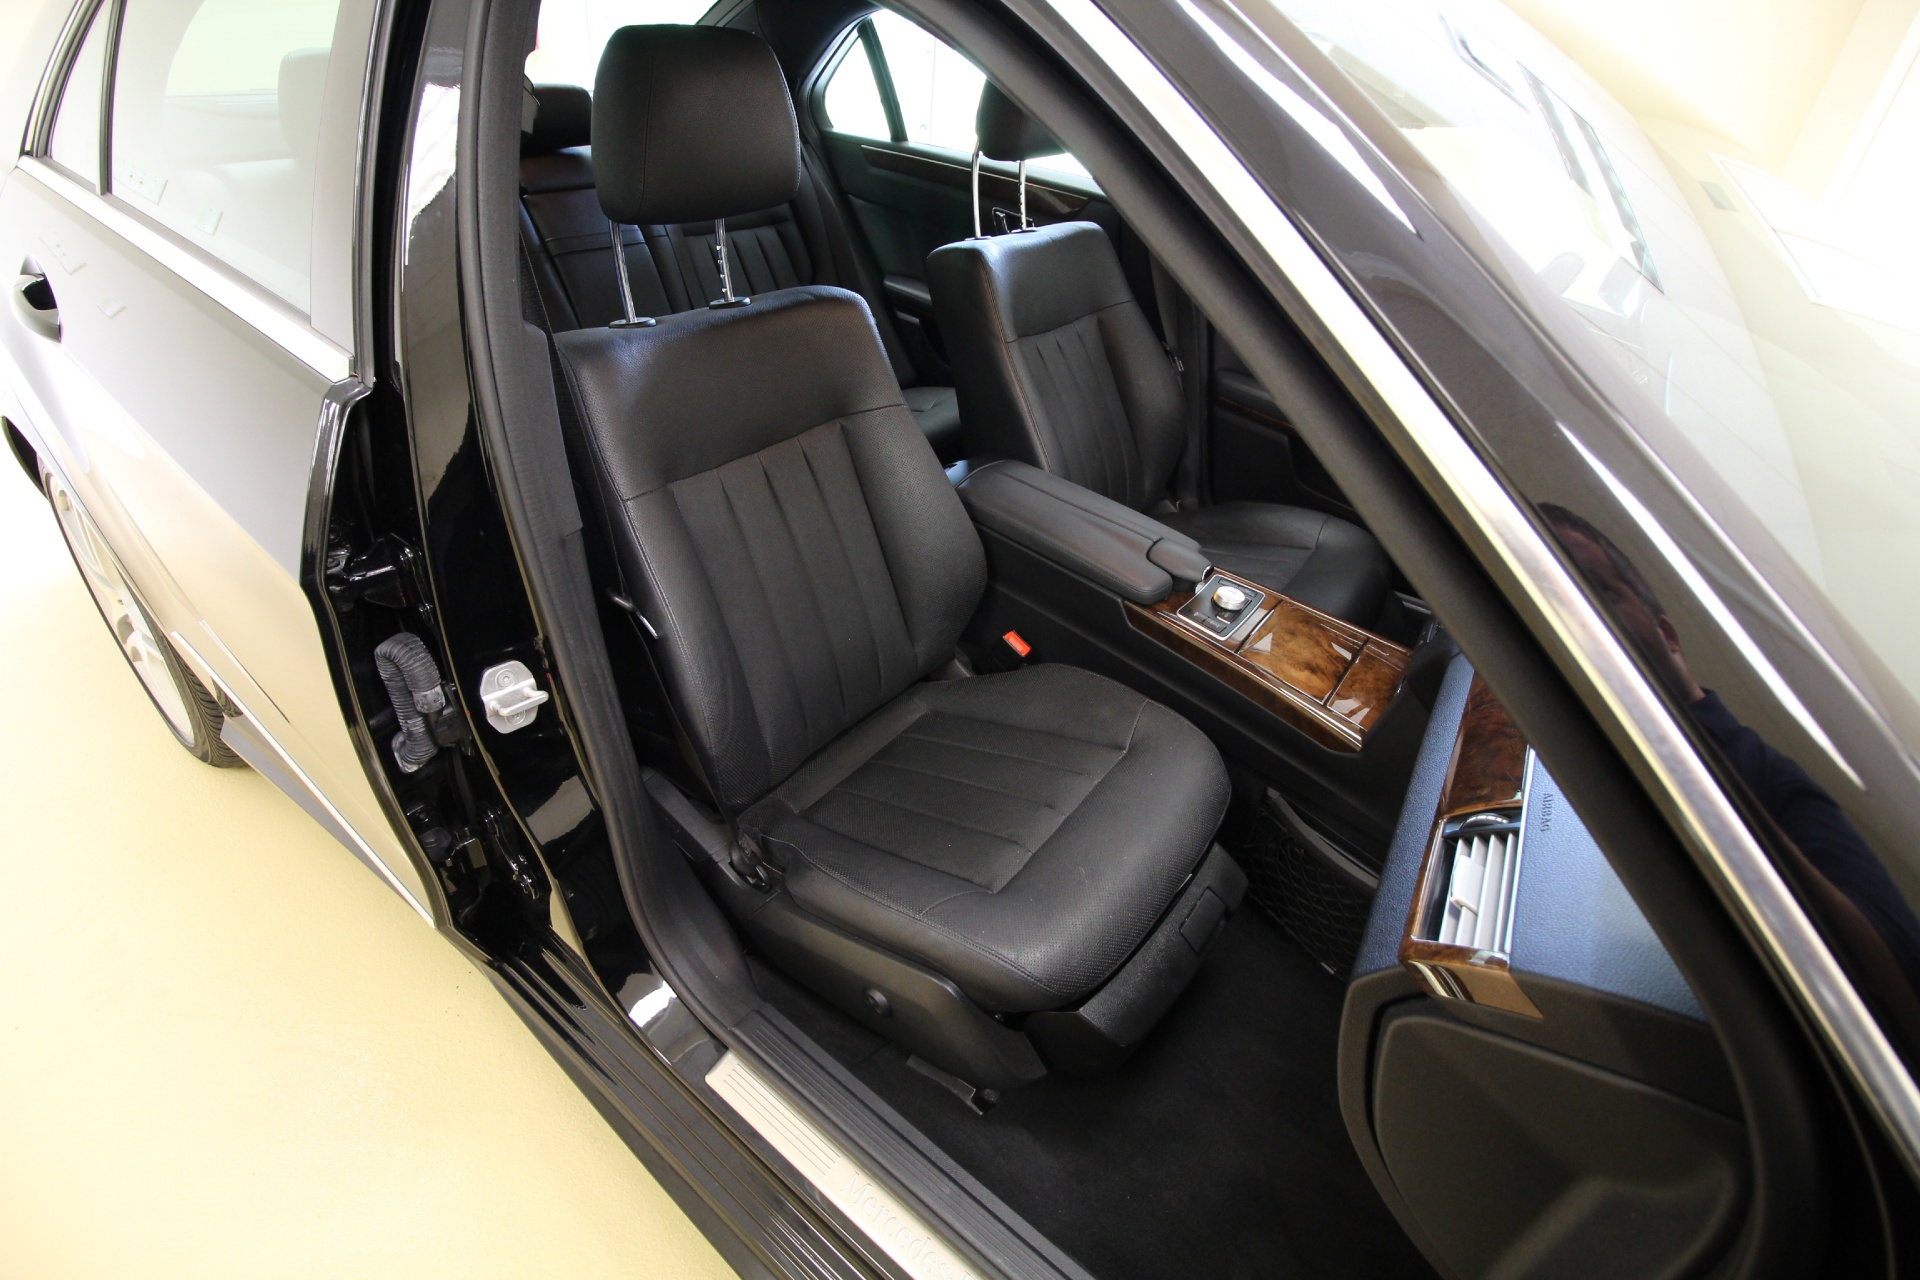 Mercedes-Benz E-Class: Cleaning the seat covers